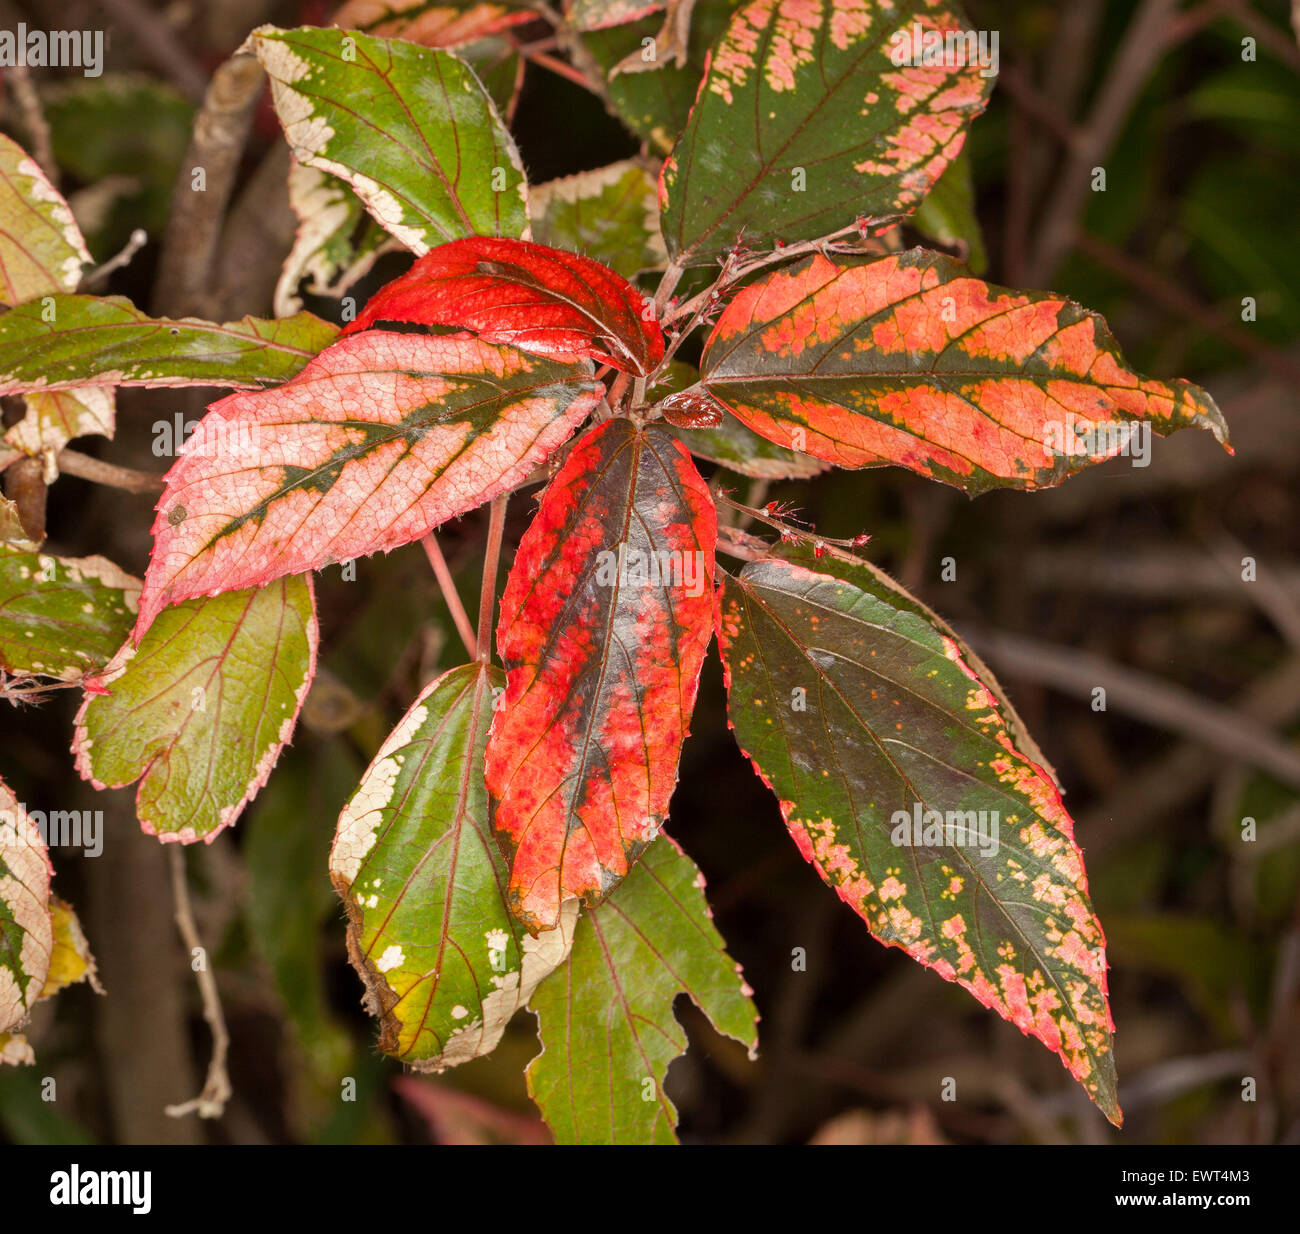 tropical bush red green leaves stockfotos tropical bush red green leaves bilder alamy. Black Bedroom Furniture Sets. Home Design Ideas